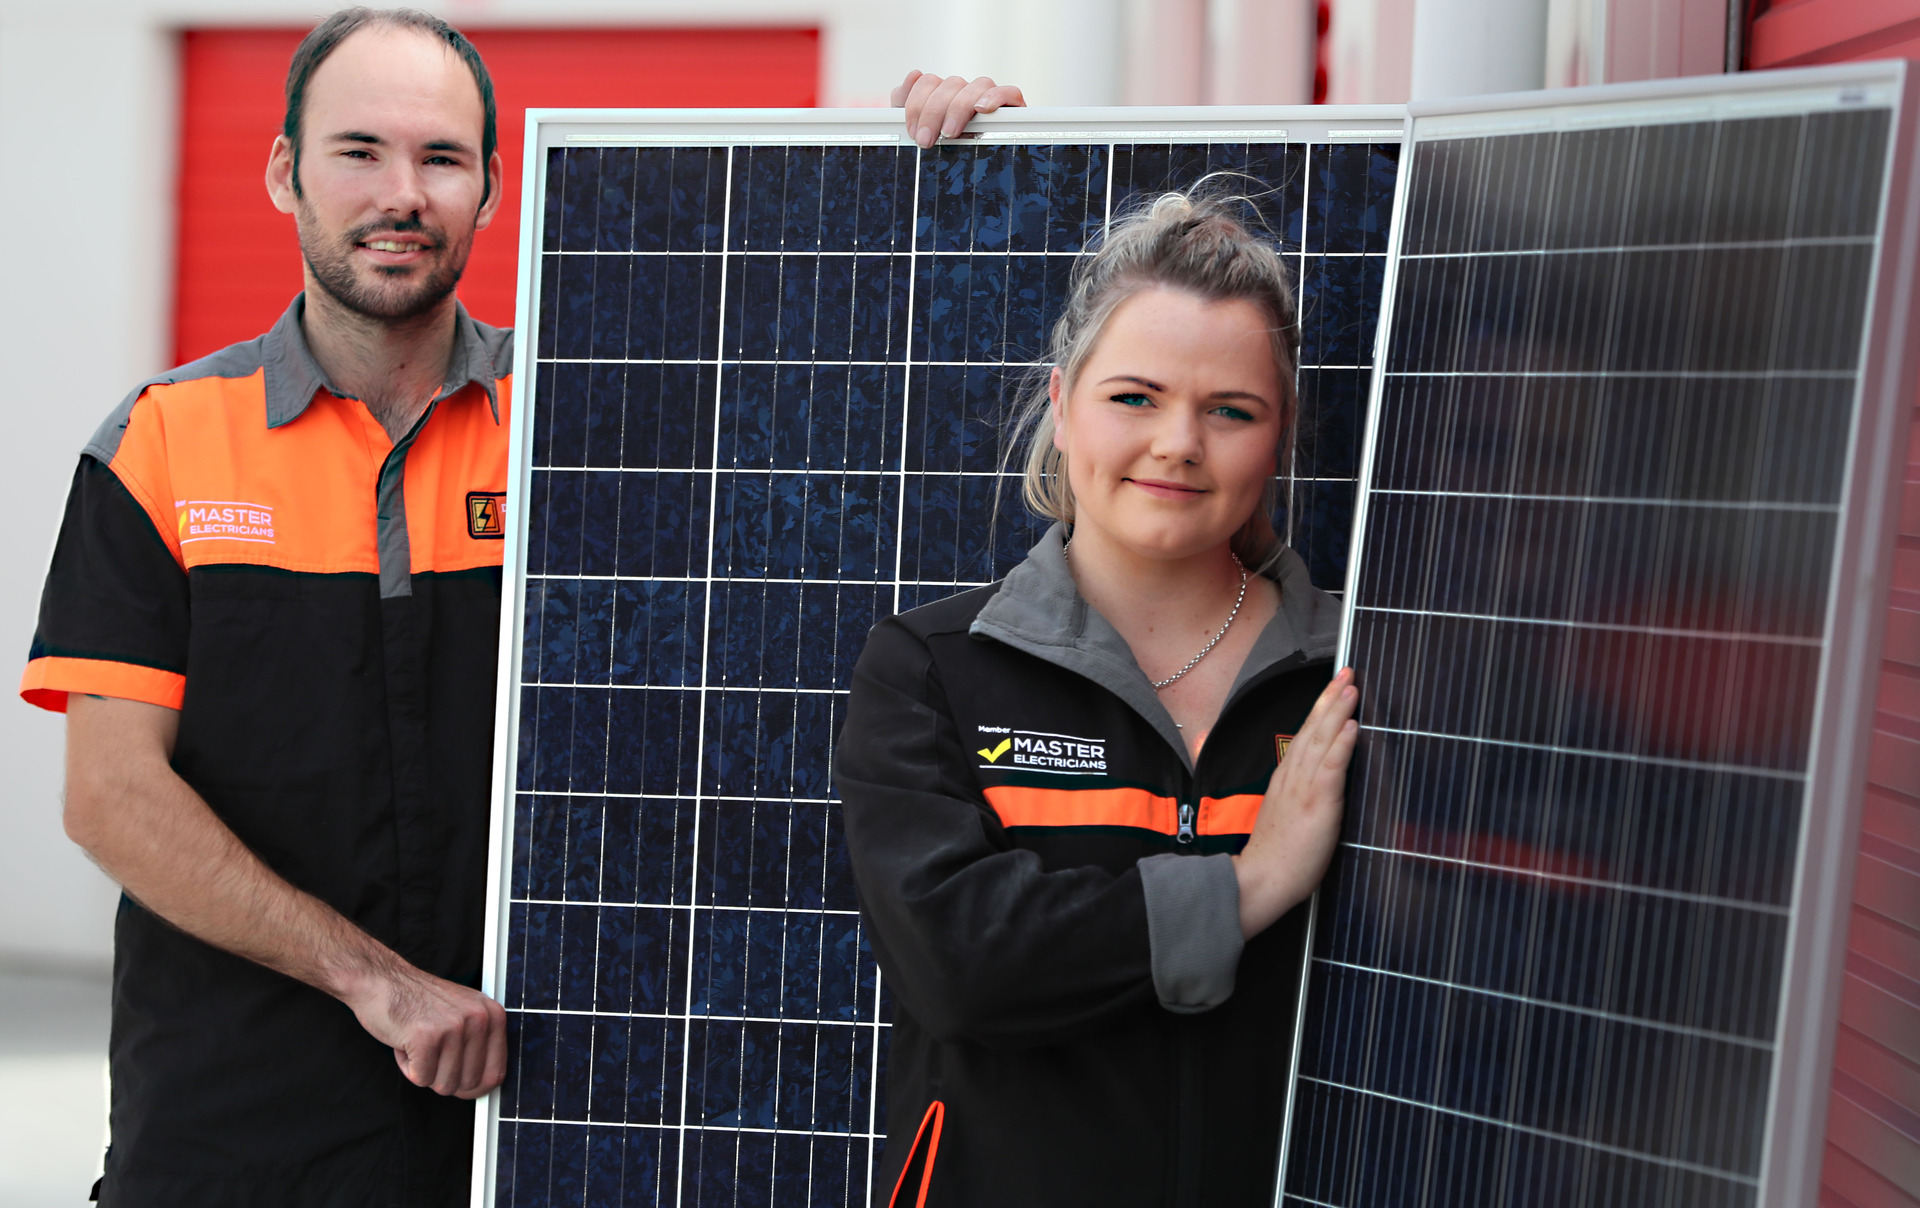 Solar power may be alternative in Northland